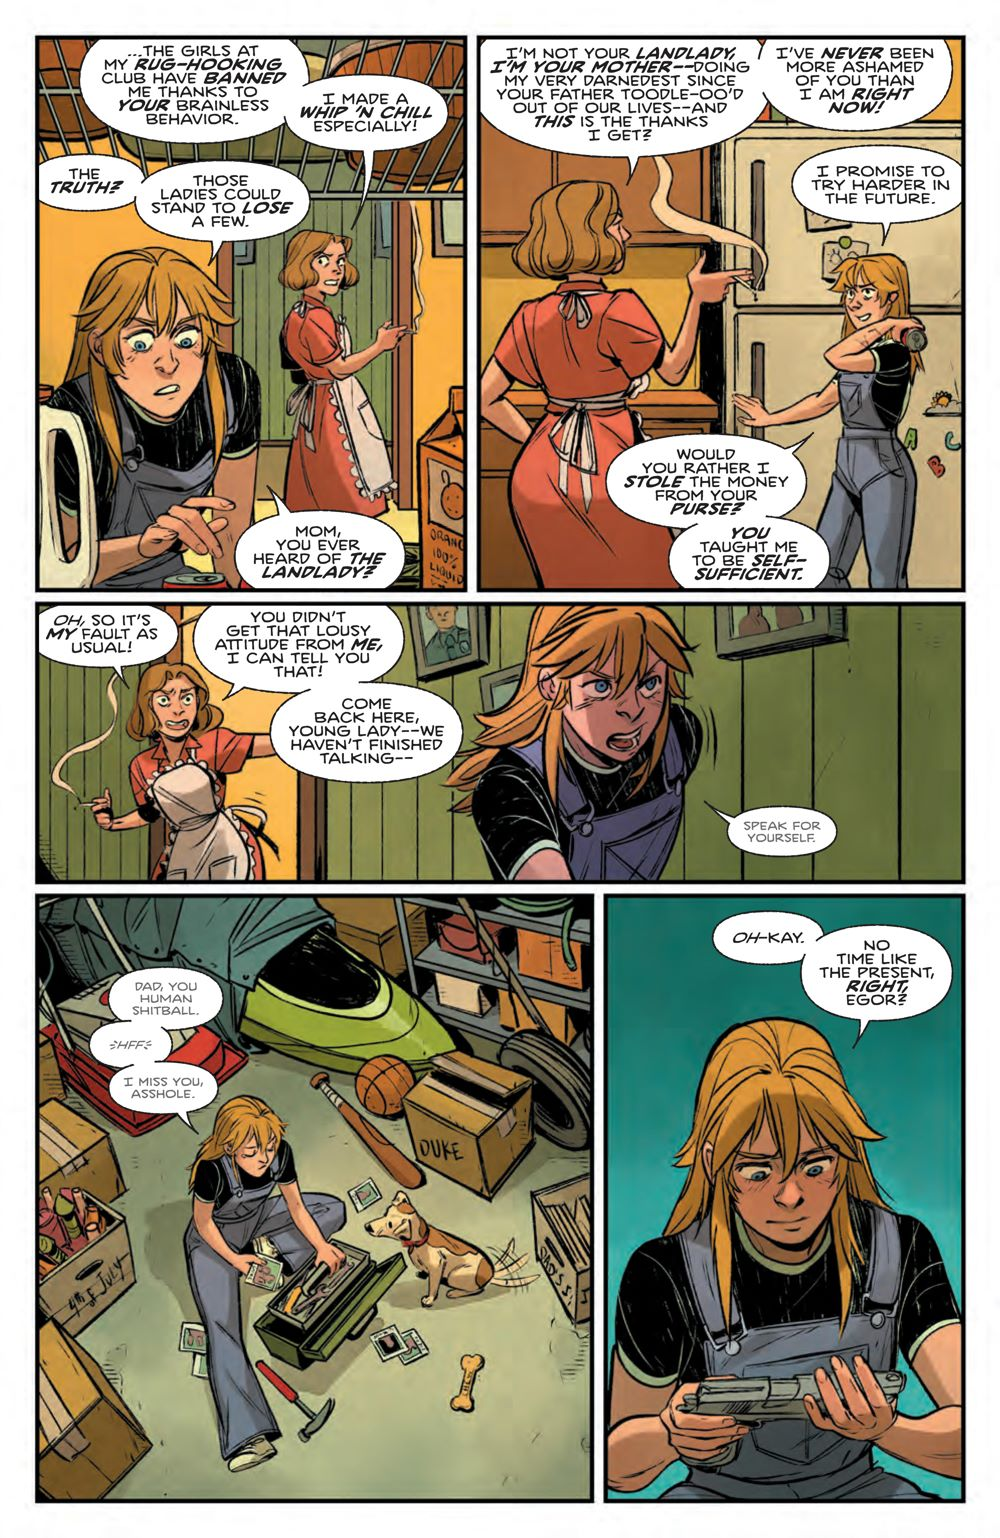 ProctorValleyRoad_002_PRESS_7 ComicList Previews: PROCTOR VALLEY ROAD #2 (OF 5)